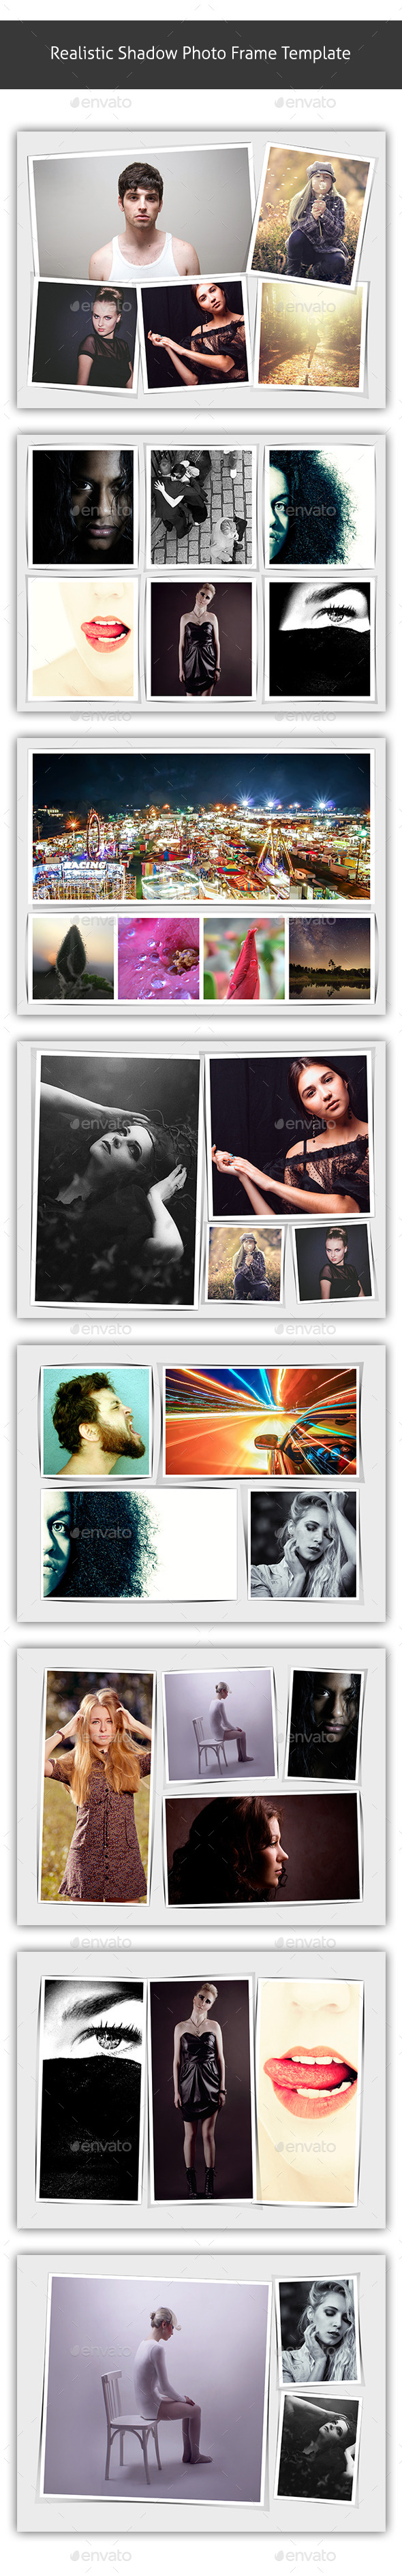 GraphicRiver Realistic Shadow Photo Frame Template 9993581